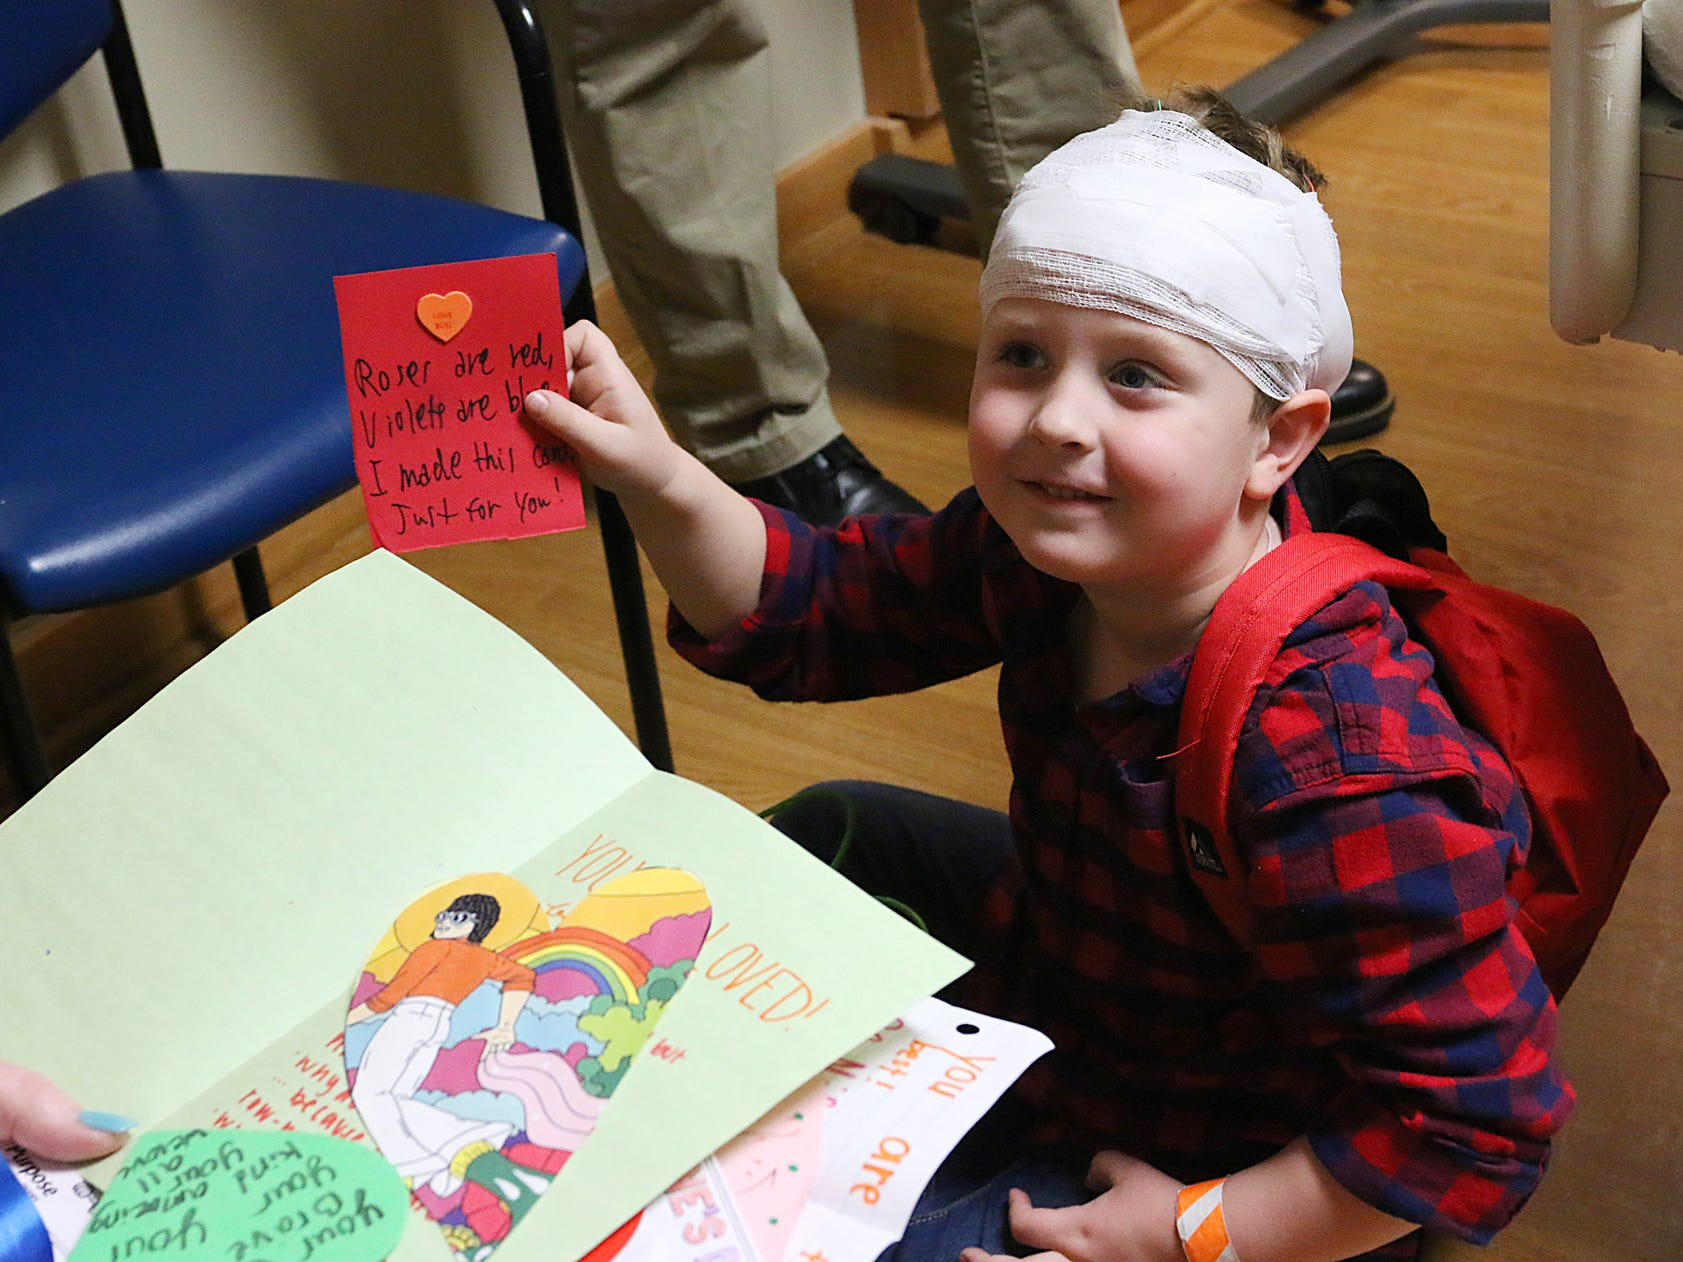 Connor holds up one of the several homemeade Valentine's Day cards he received on Thursday morning at the Prisma Health Children's Hospital.